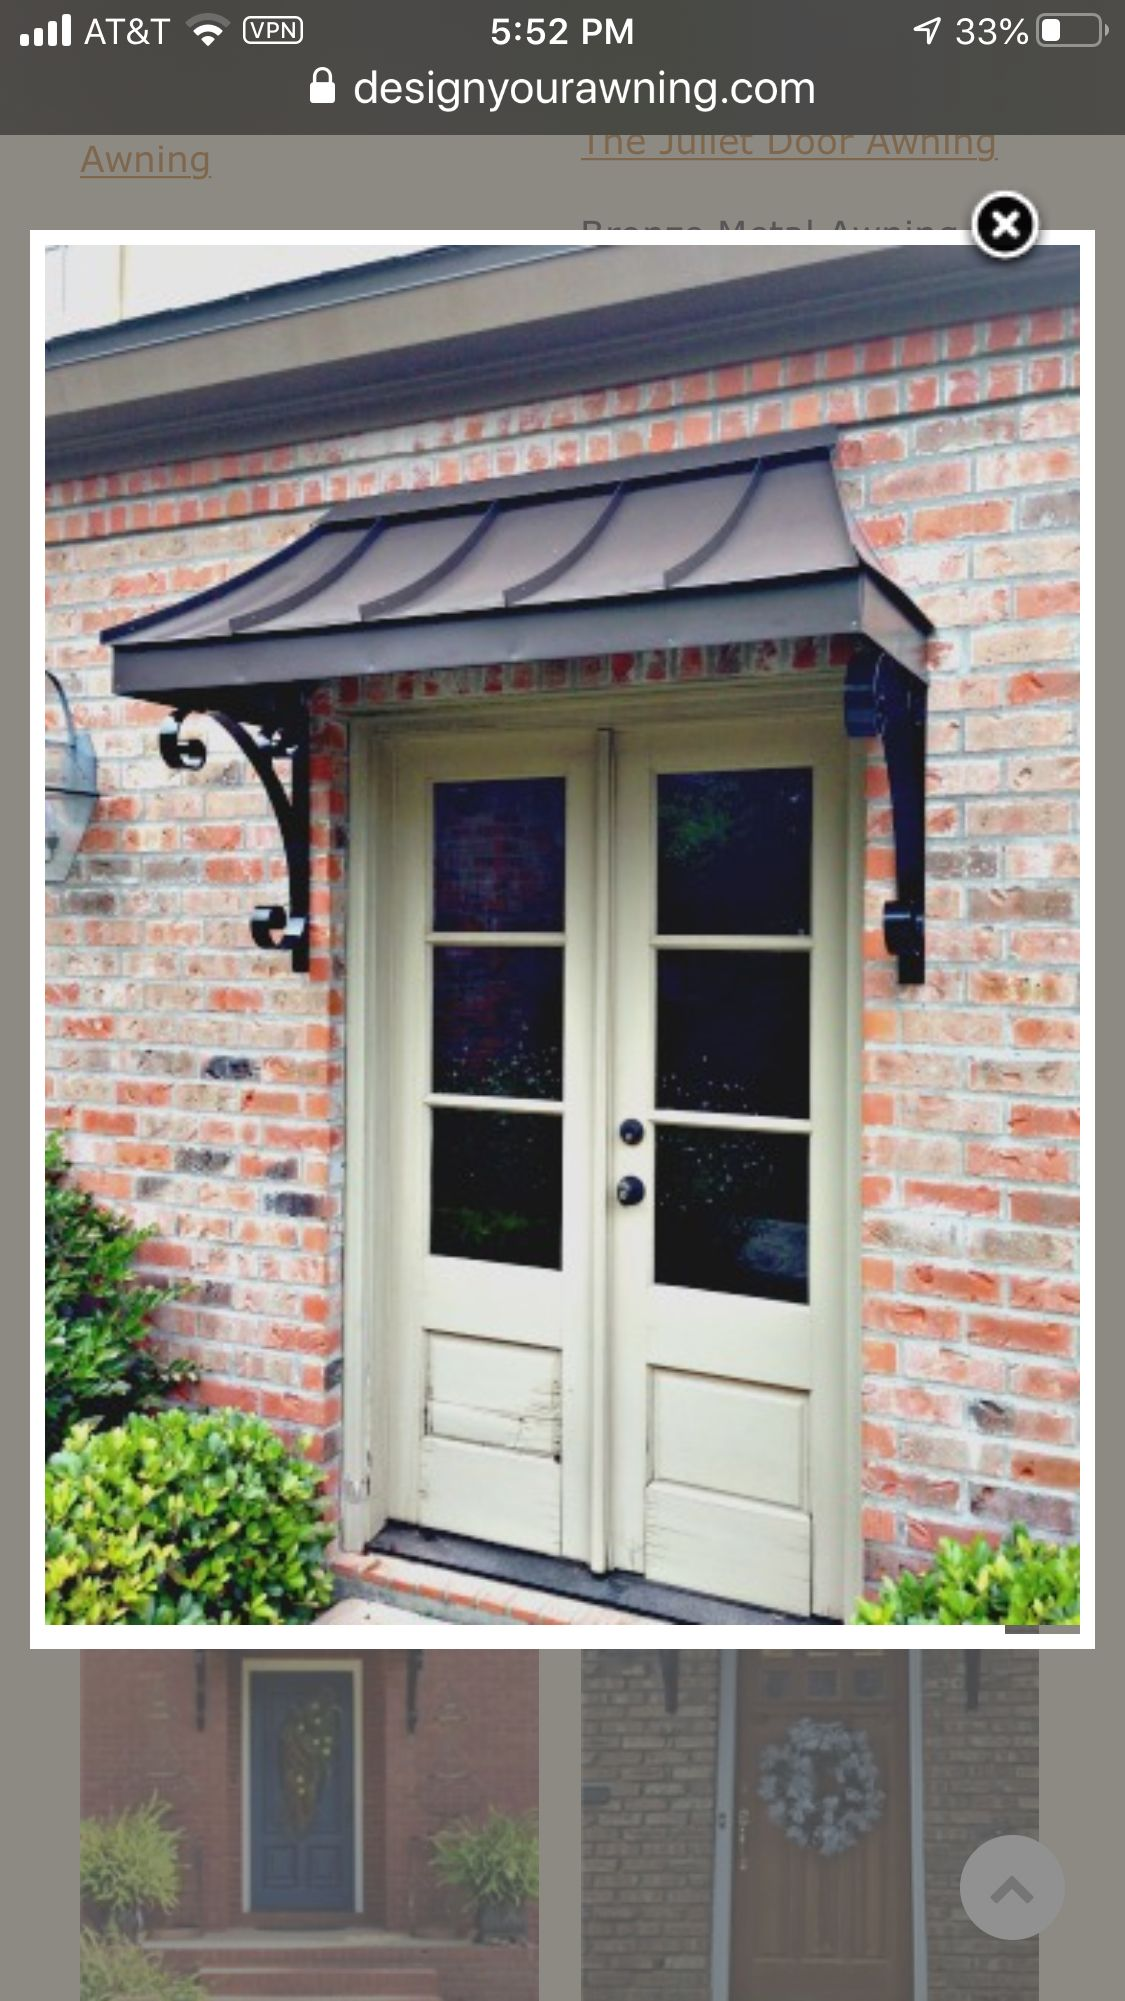 Pin By Susan Scott Nowak On Sunroom In 2020 Front Door Awning Metal Awning Copper Awning